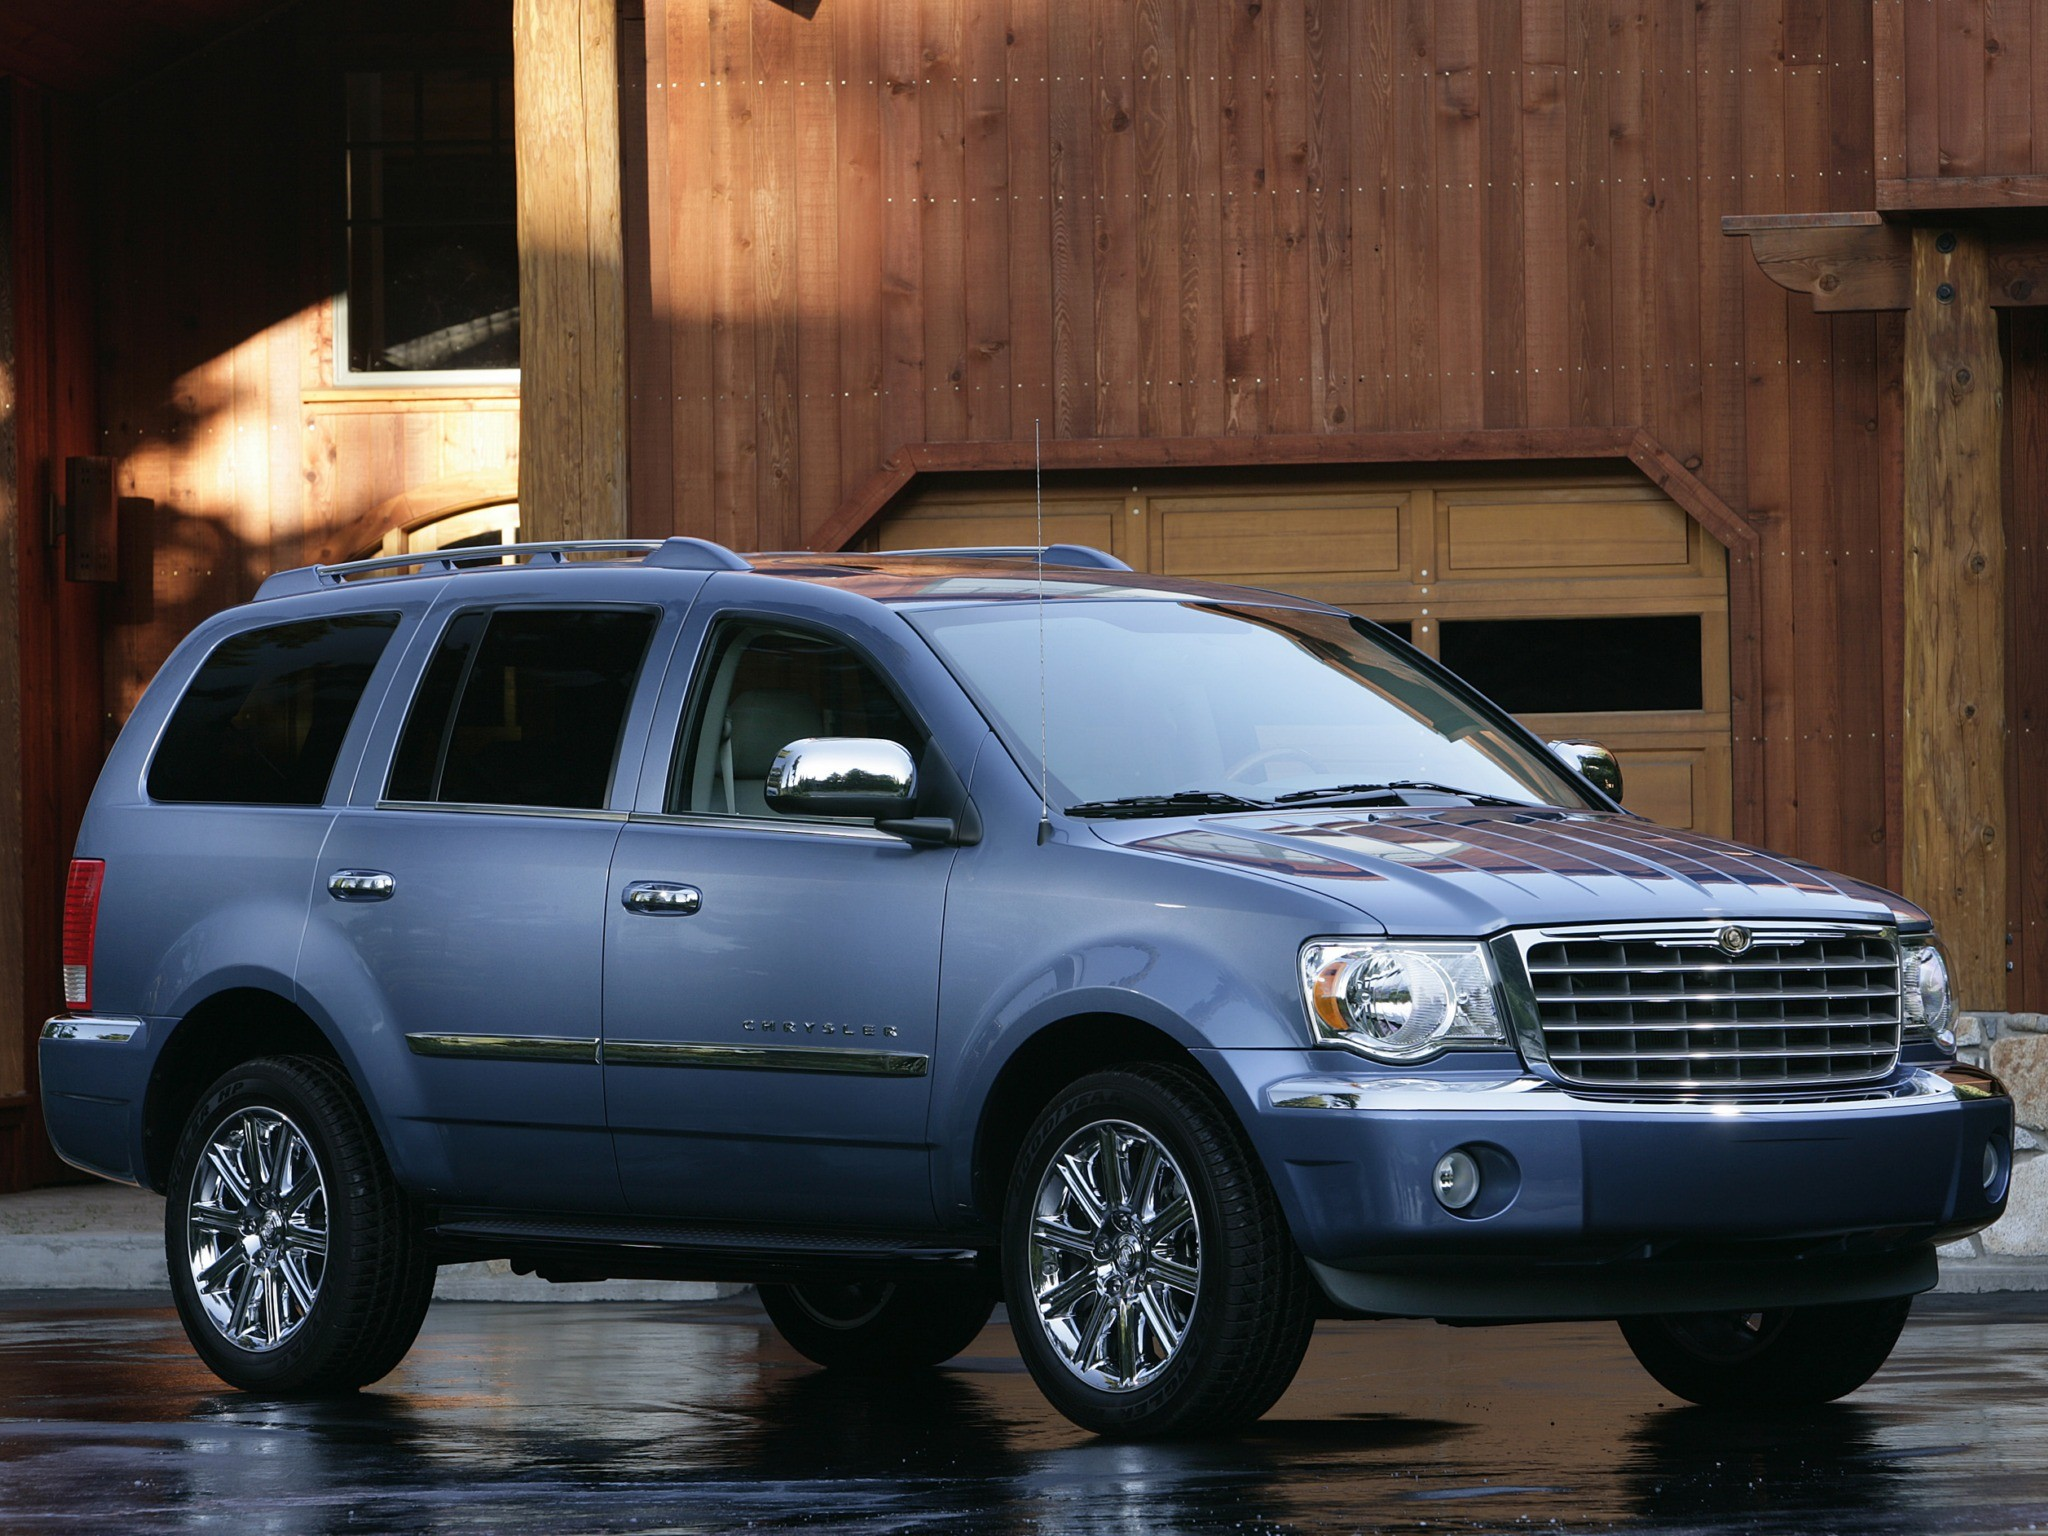 Chrysler Aspen on 2007 Dodge Durango